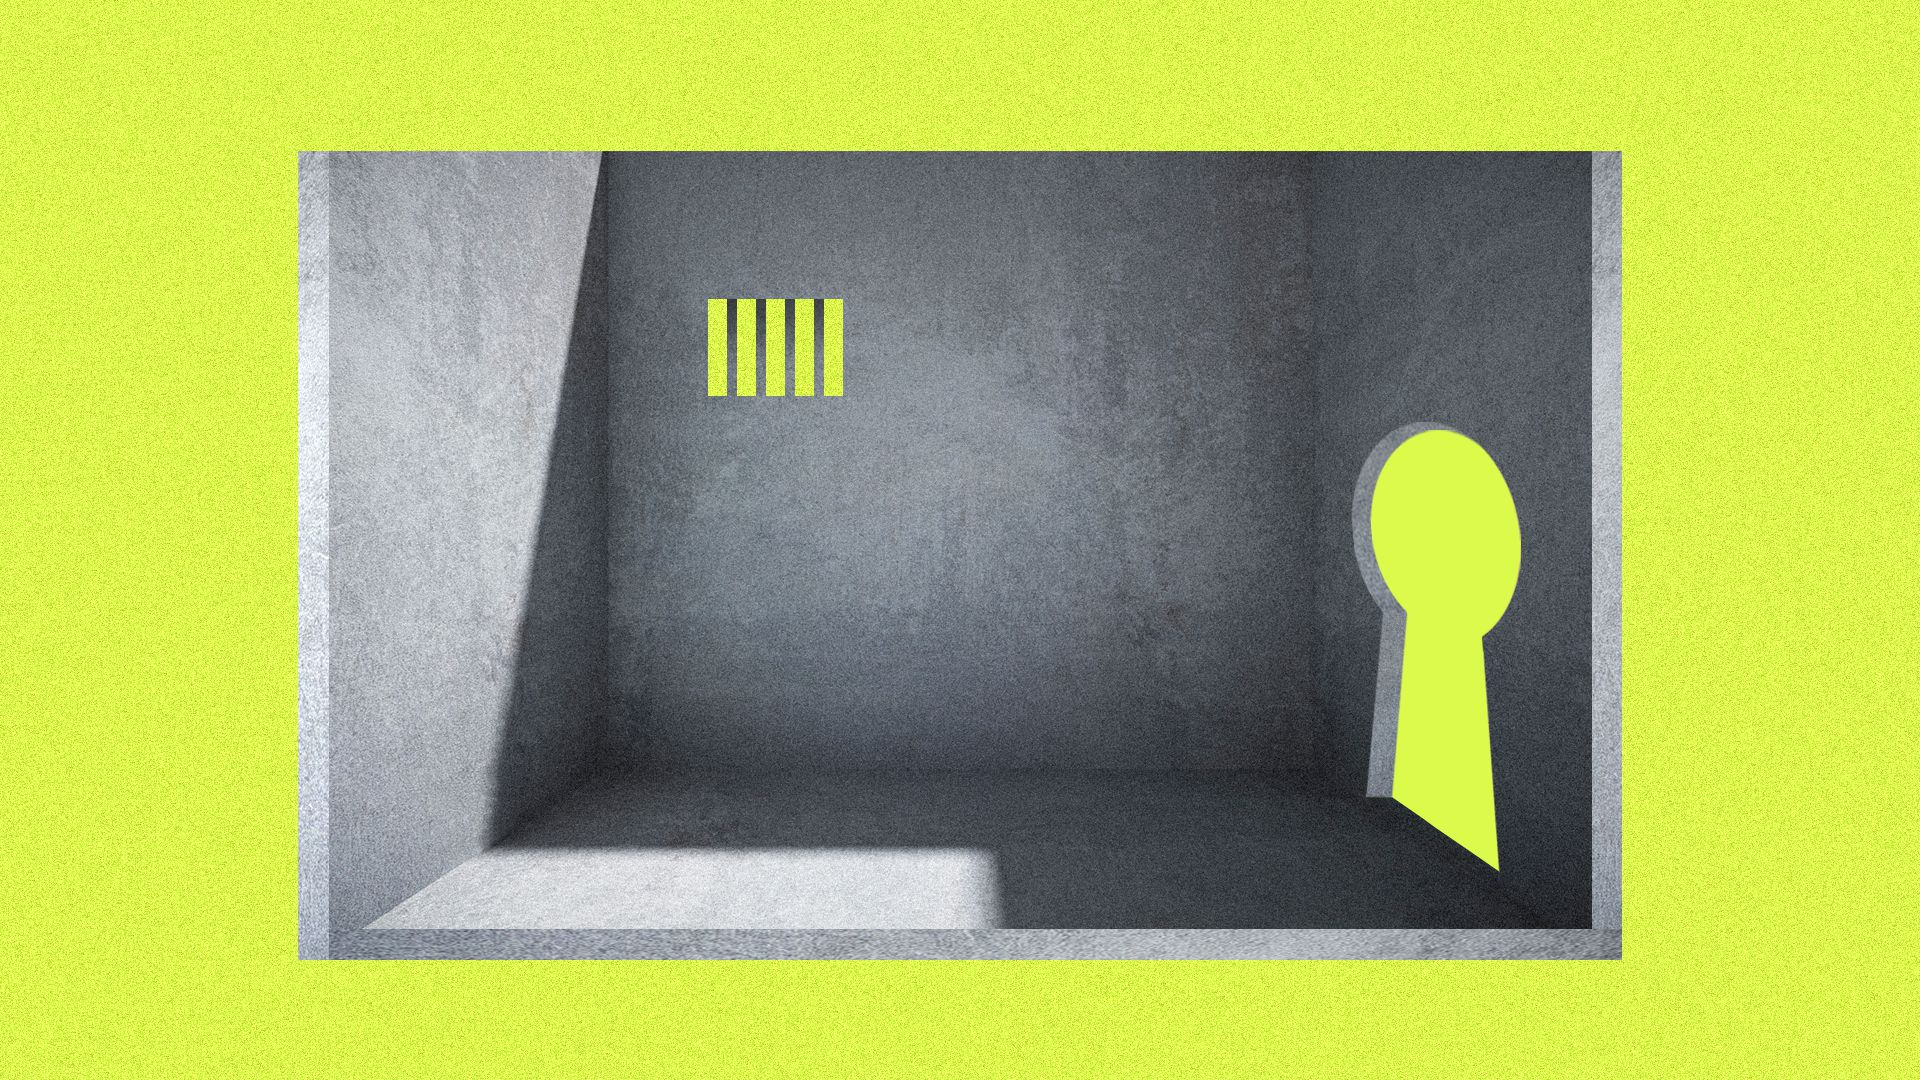 An illustration of a small prison cell with a big key hole set against a lime green background